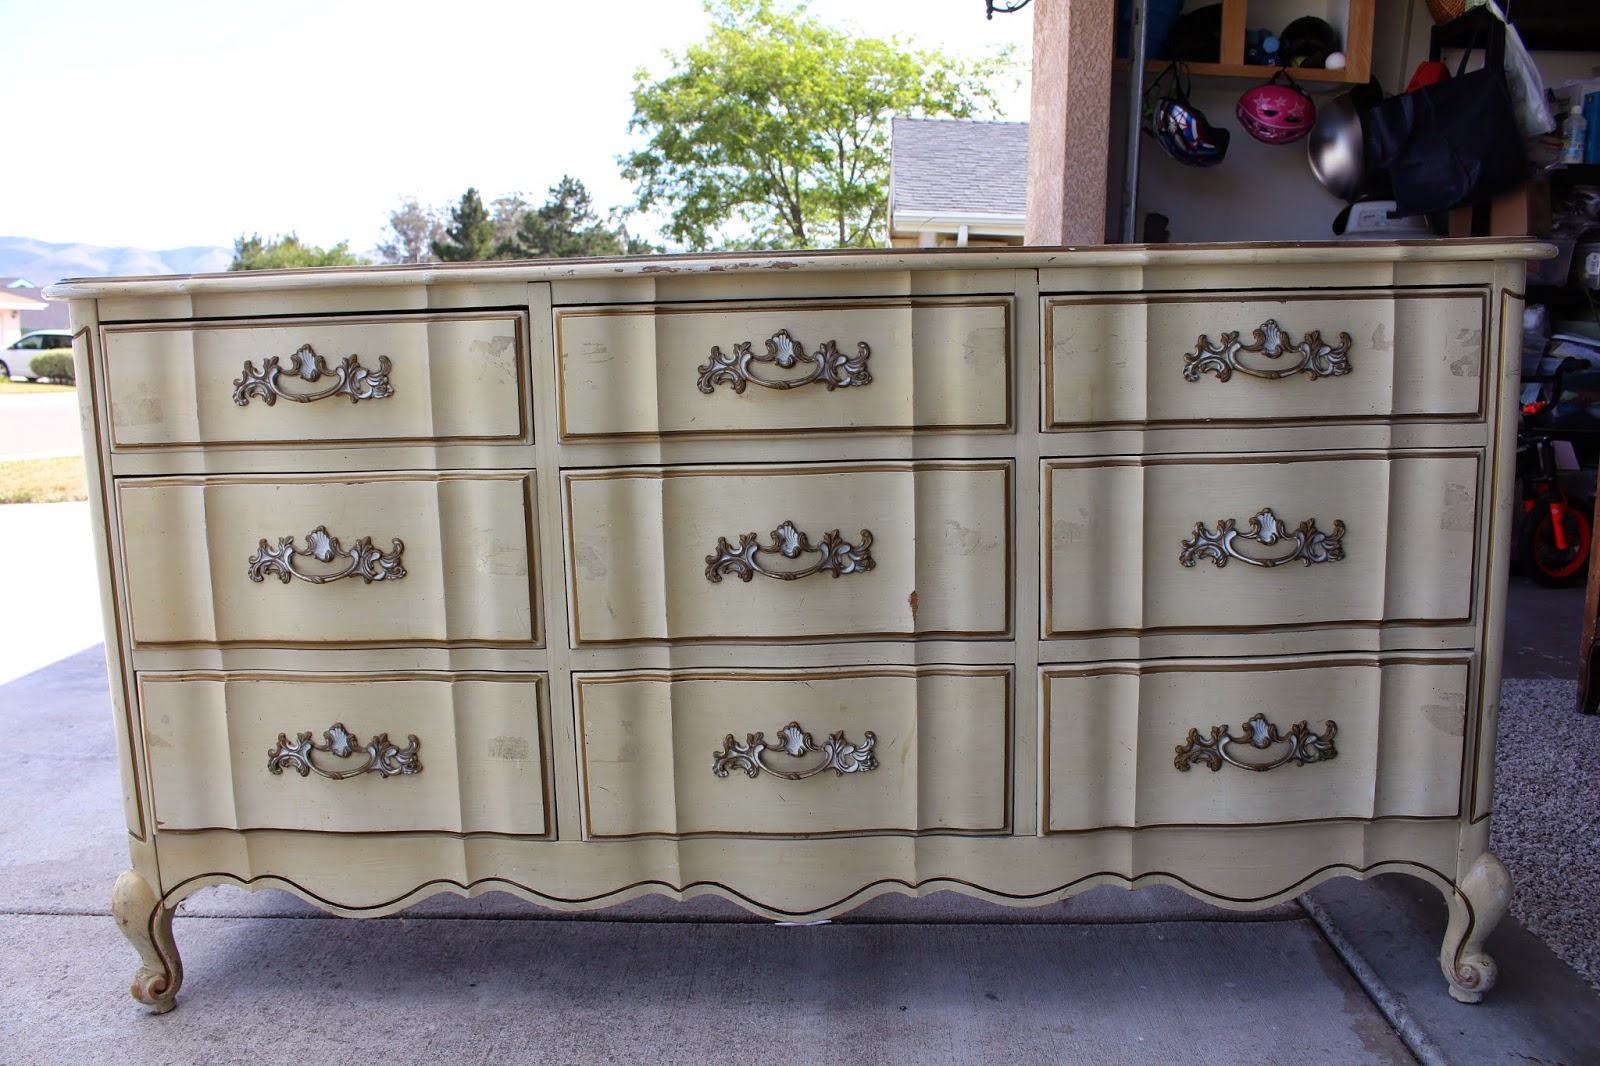 I Just Finished A Dresser Ve Been Working On For Awhile And M So Hy With How It Turned Out Here S What Looked Like Before